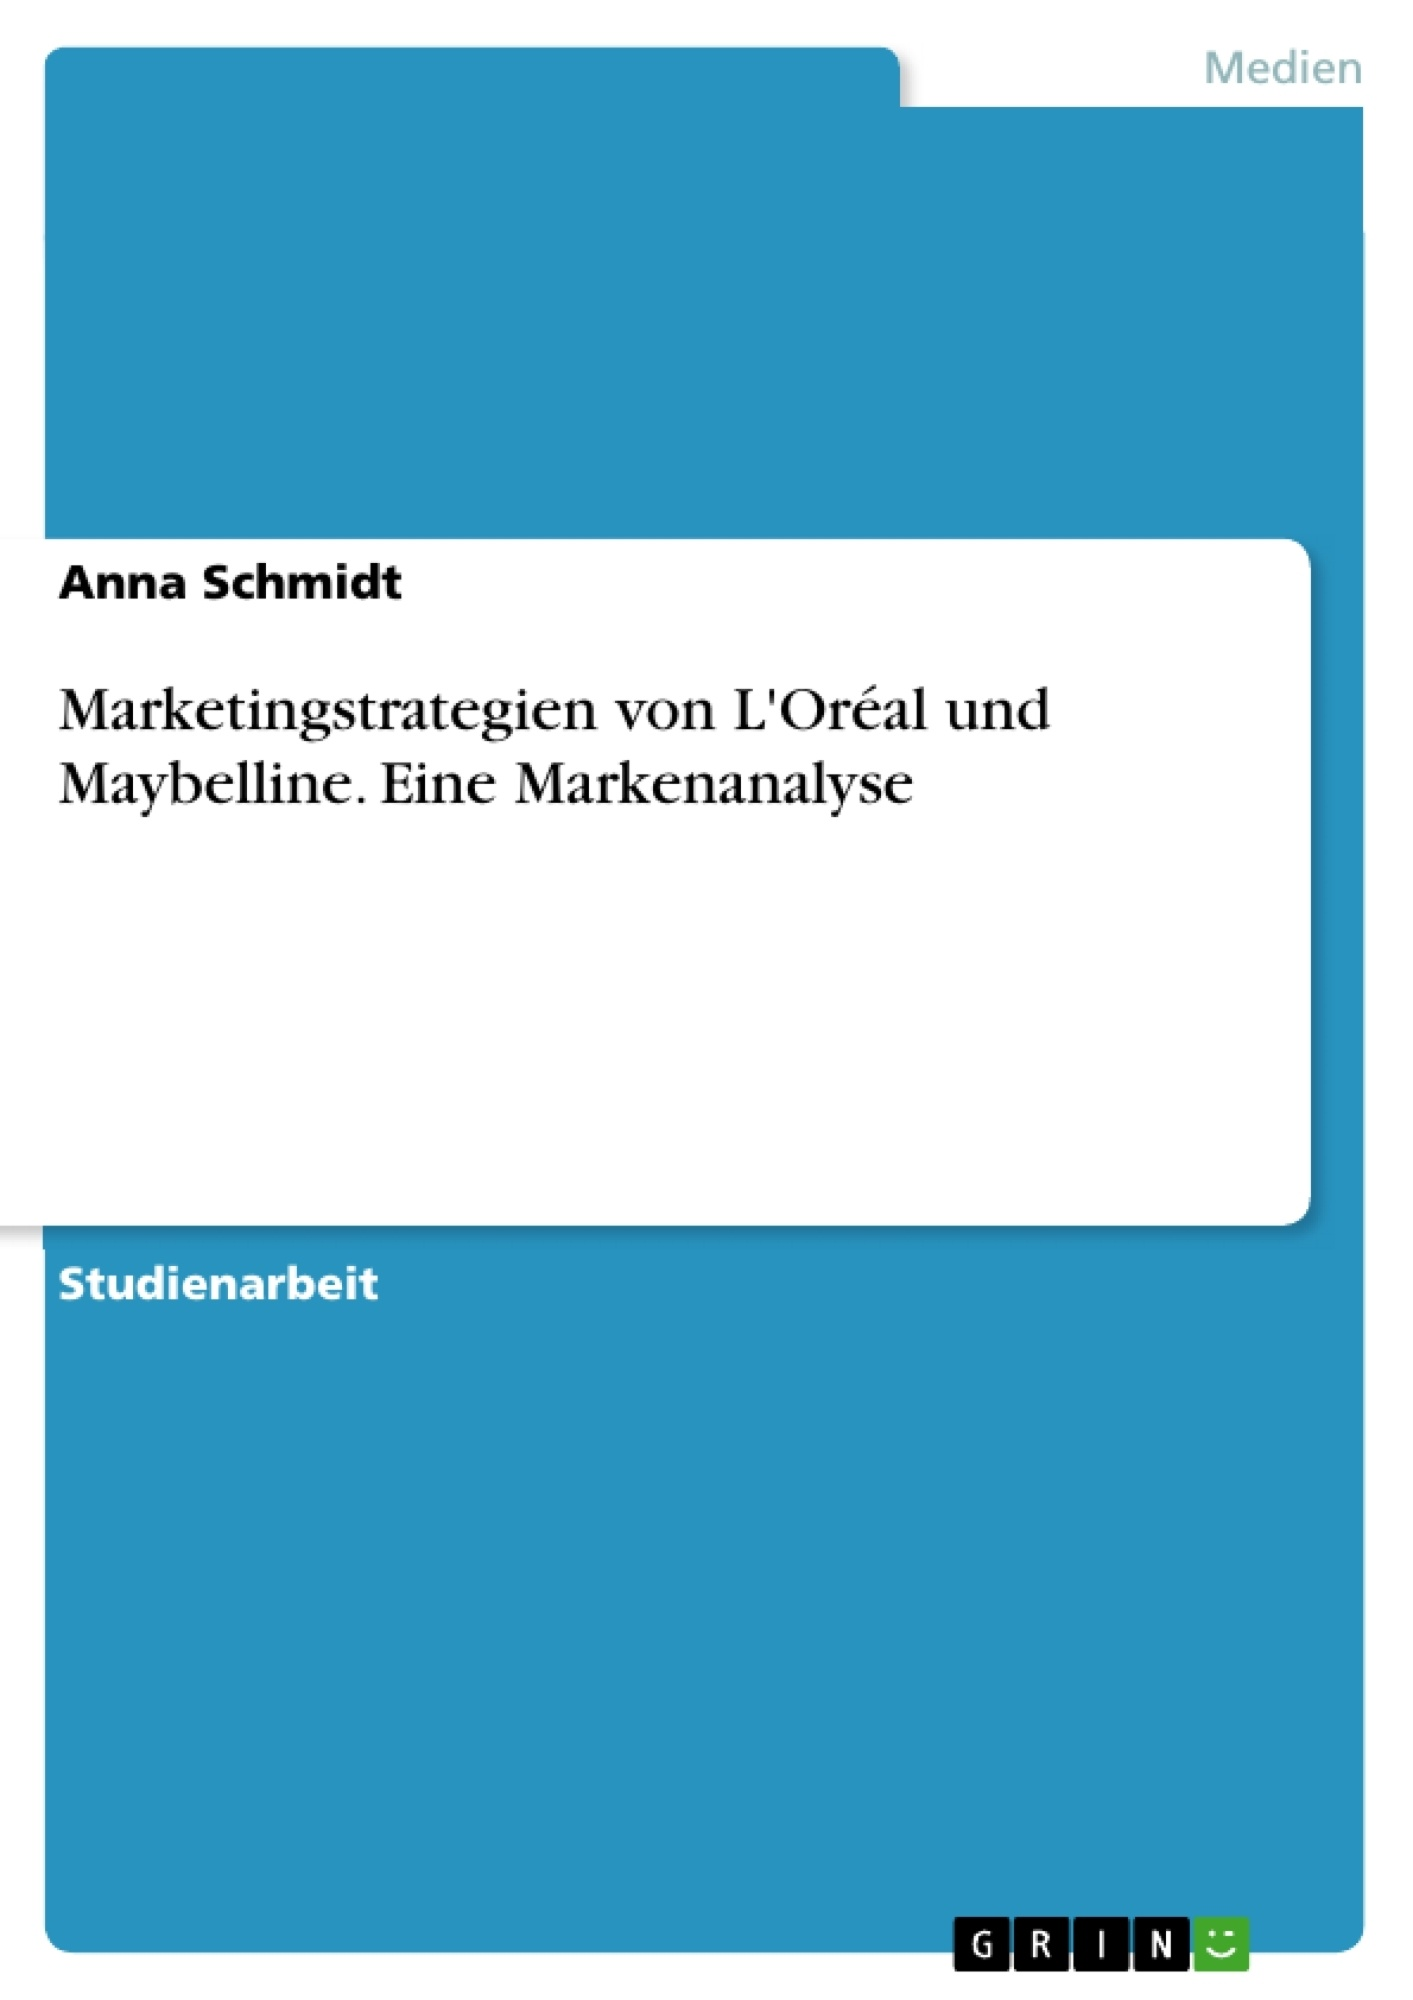 Titel: Marketingstrategien von L'Oréal und Maybelline. Eine Markenanalyse